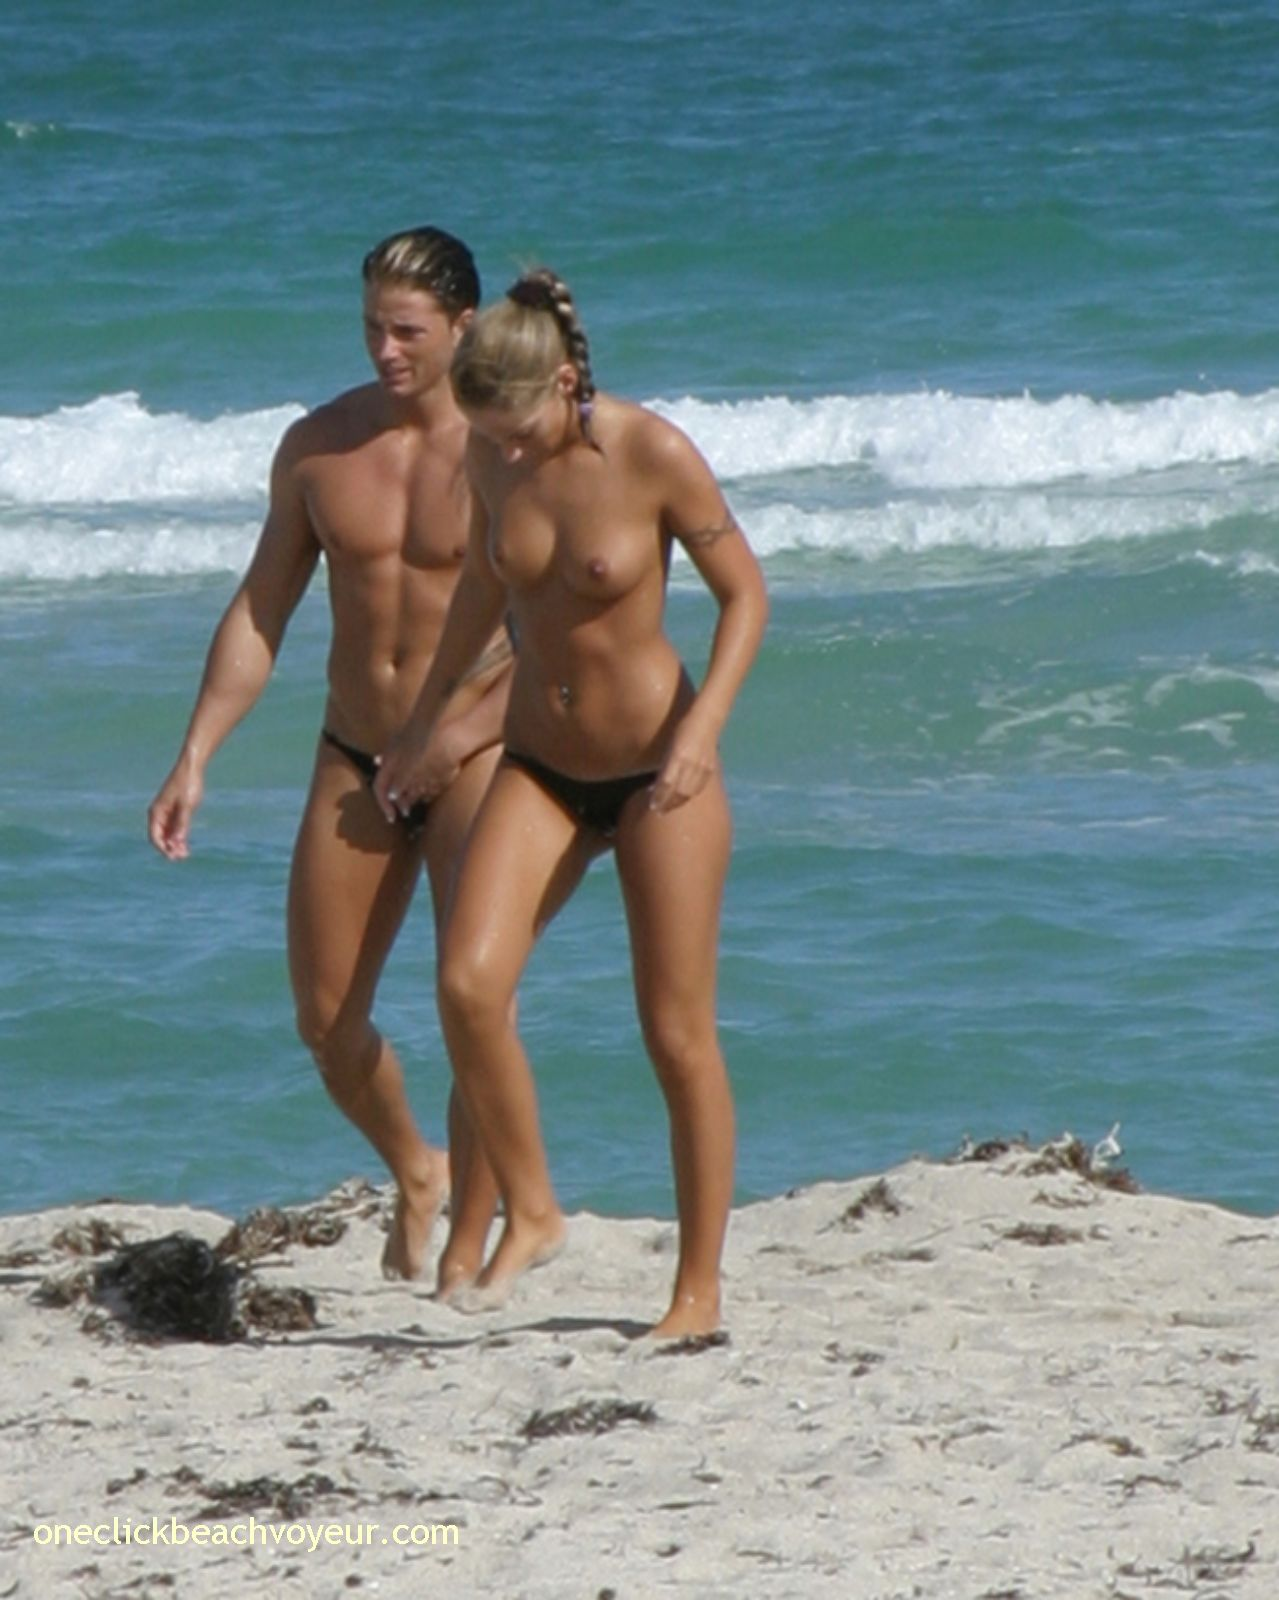 nudist beach woman sexy